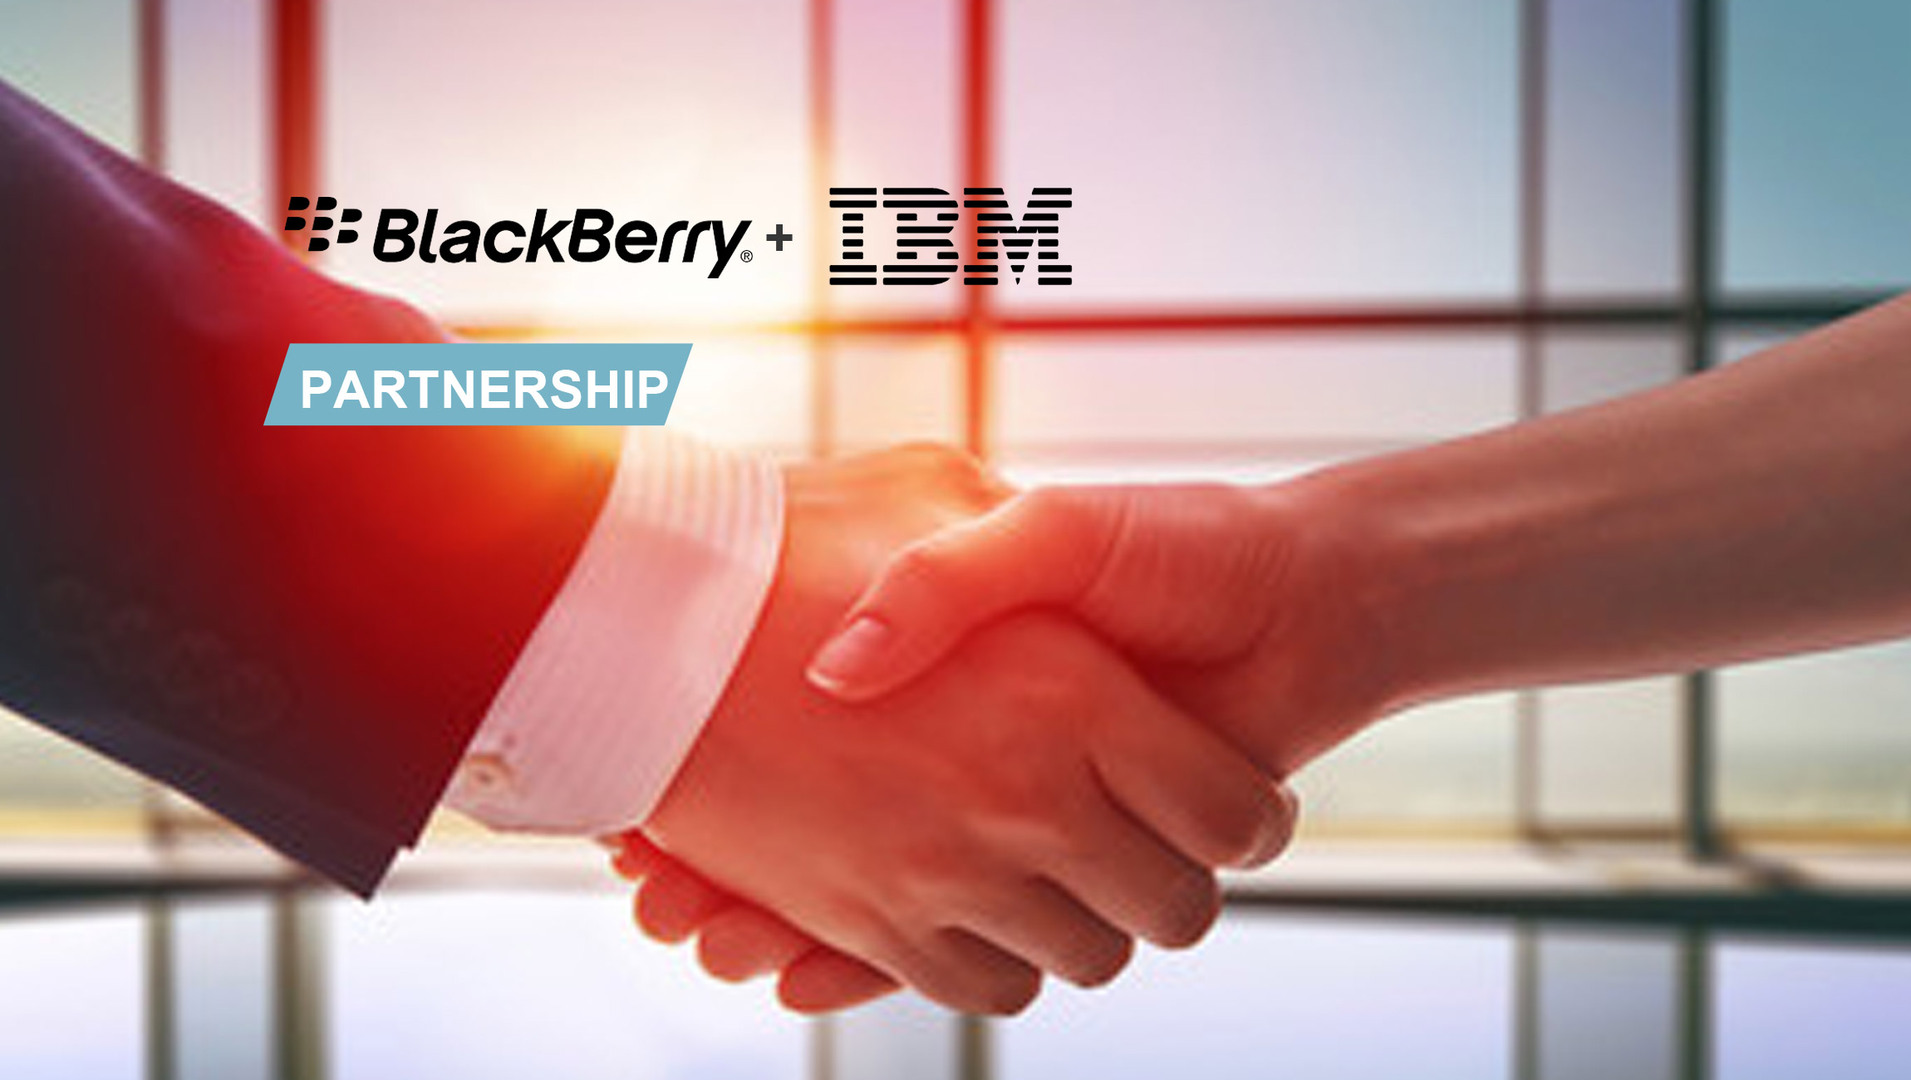 Handshake with IBM and Blackberry logos